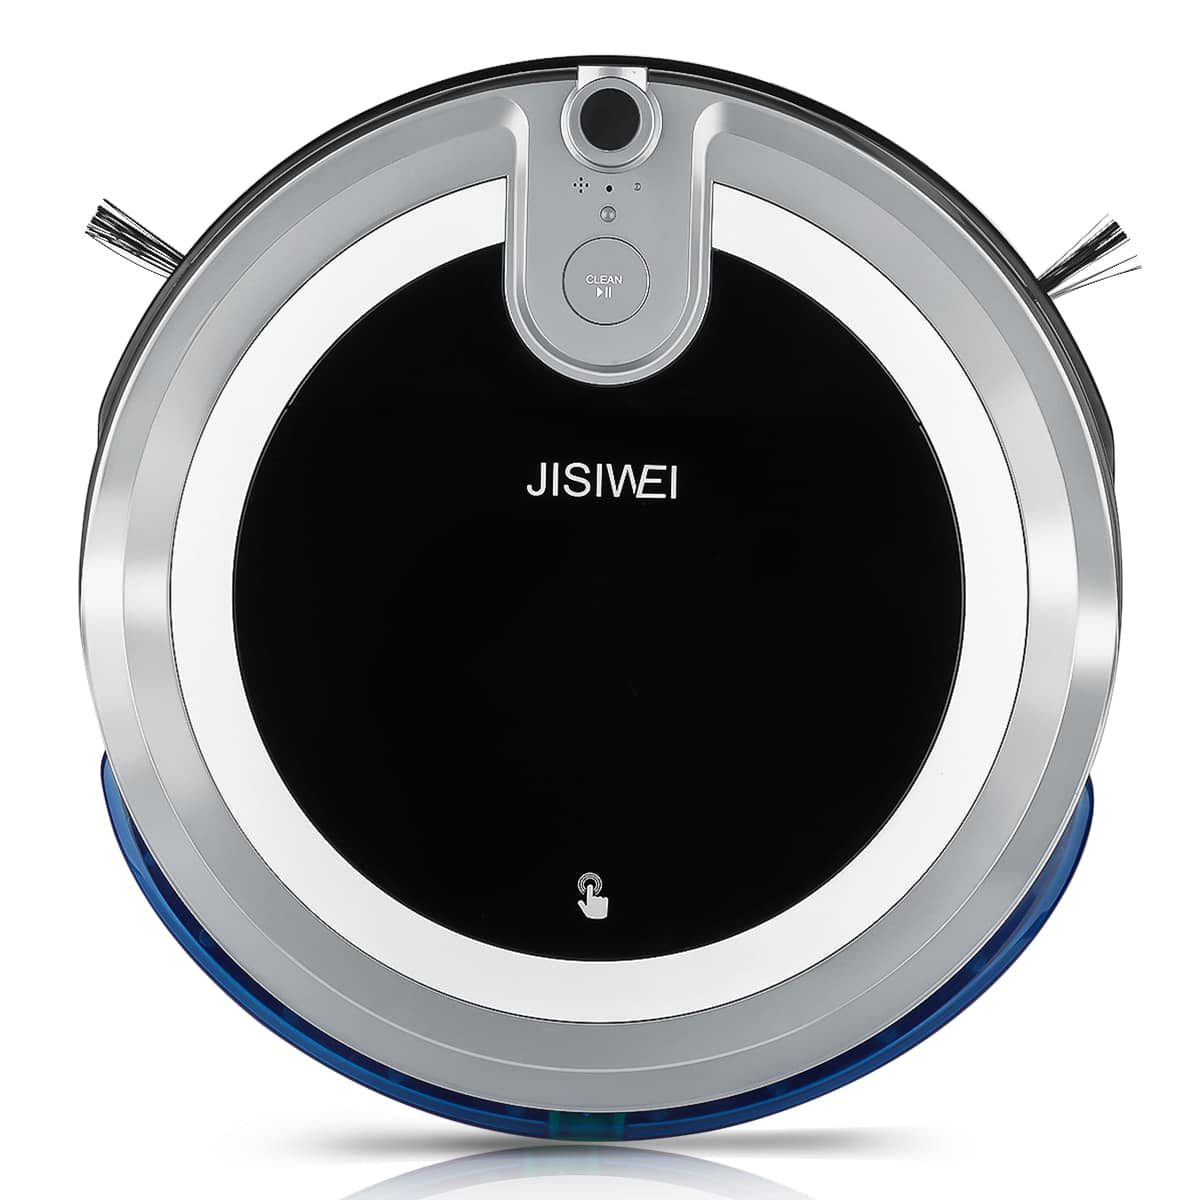 Newegg Flash Sale JISIWEI I3 Wi-Fi Enabled Robotic Vacuum Cleaner Automatic Self Charging Floor Cleaner $79.99 + FS